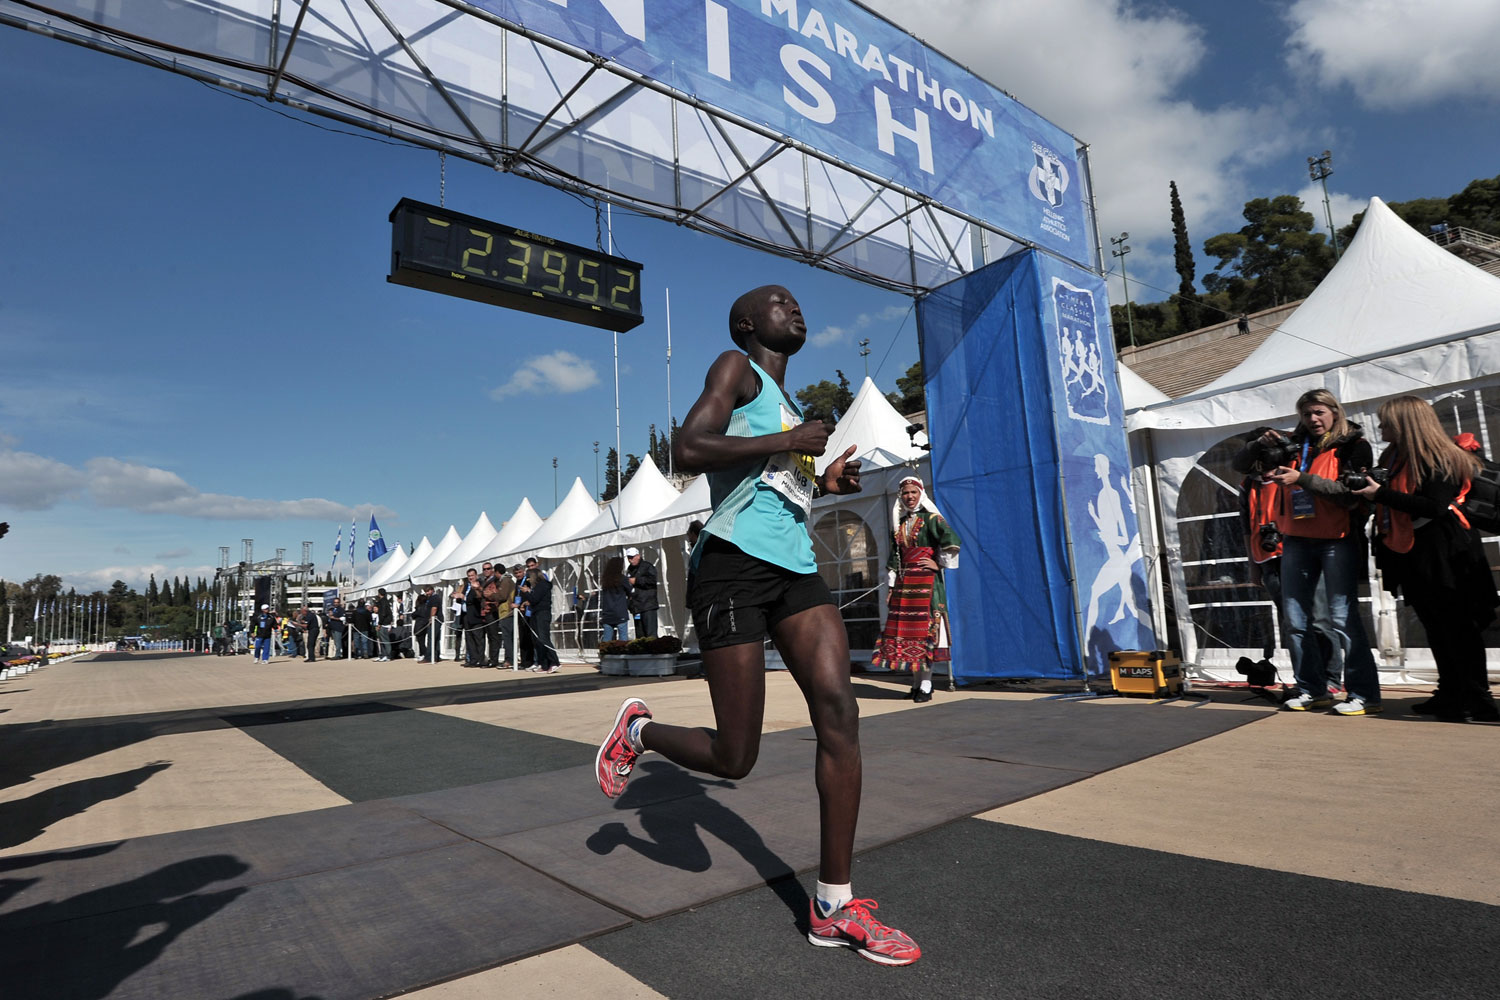 Chelengat Viola Kimetto crosses the finish line of the 30th Athens Classic Marathon in 2012.